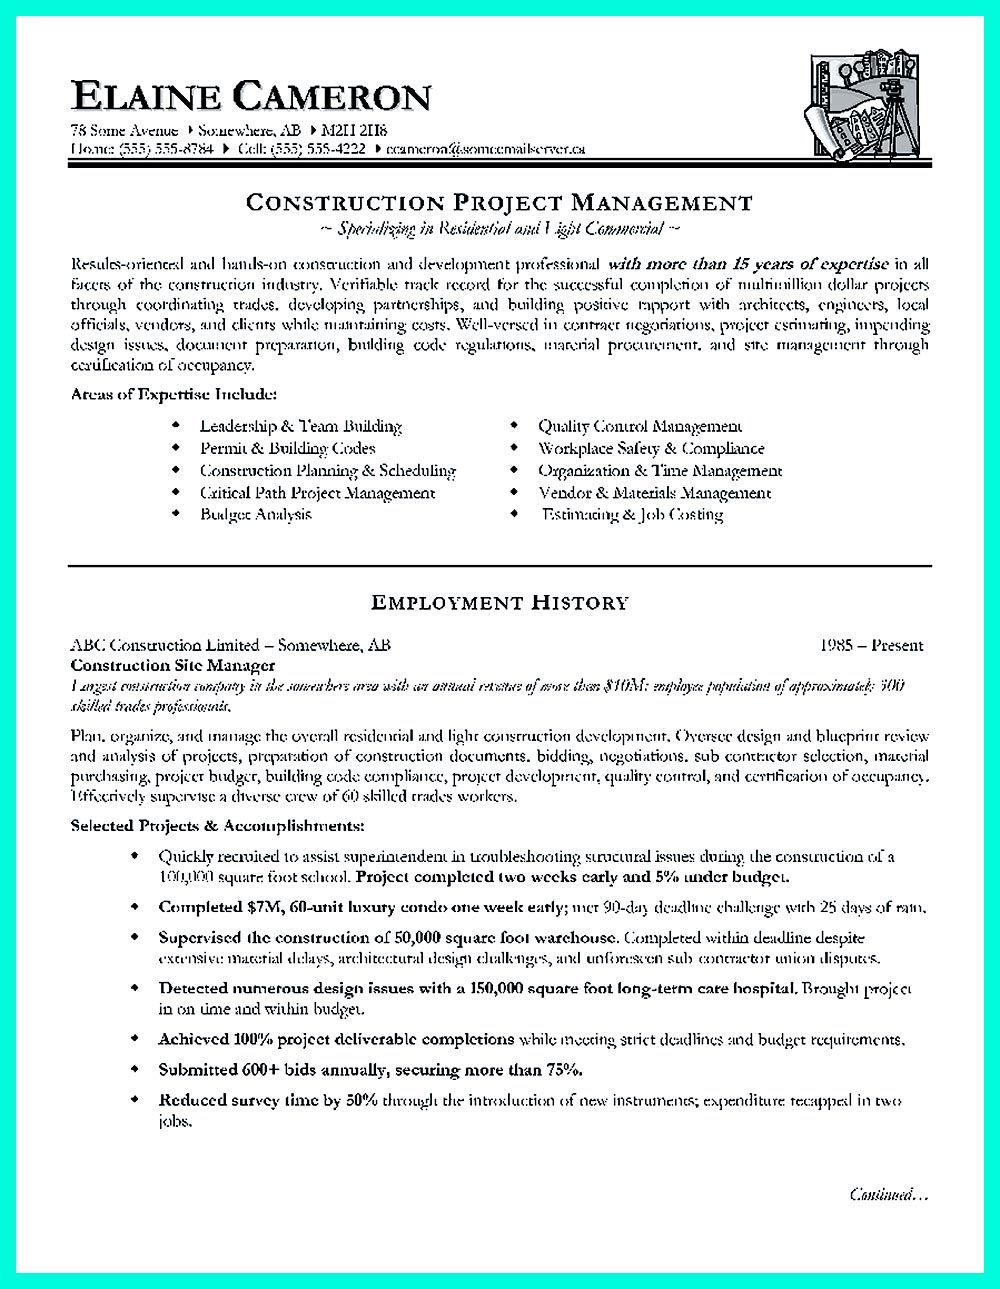 Construction project manager resume for experienced one